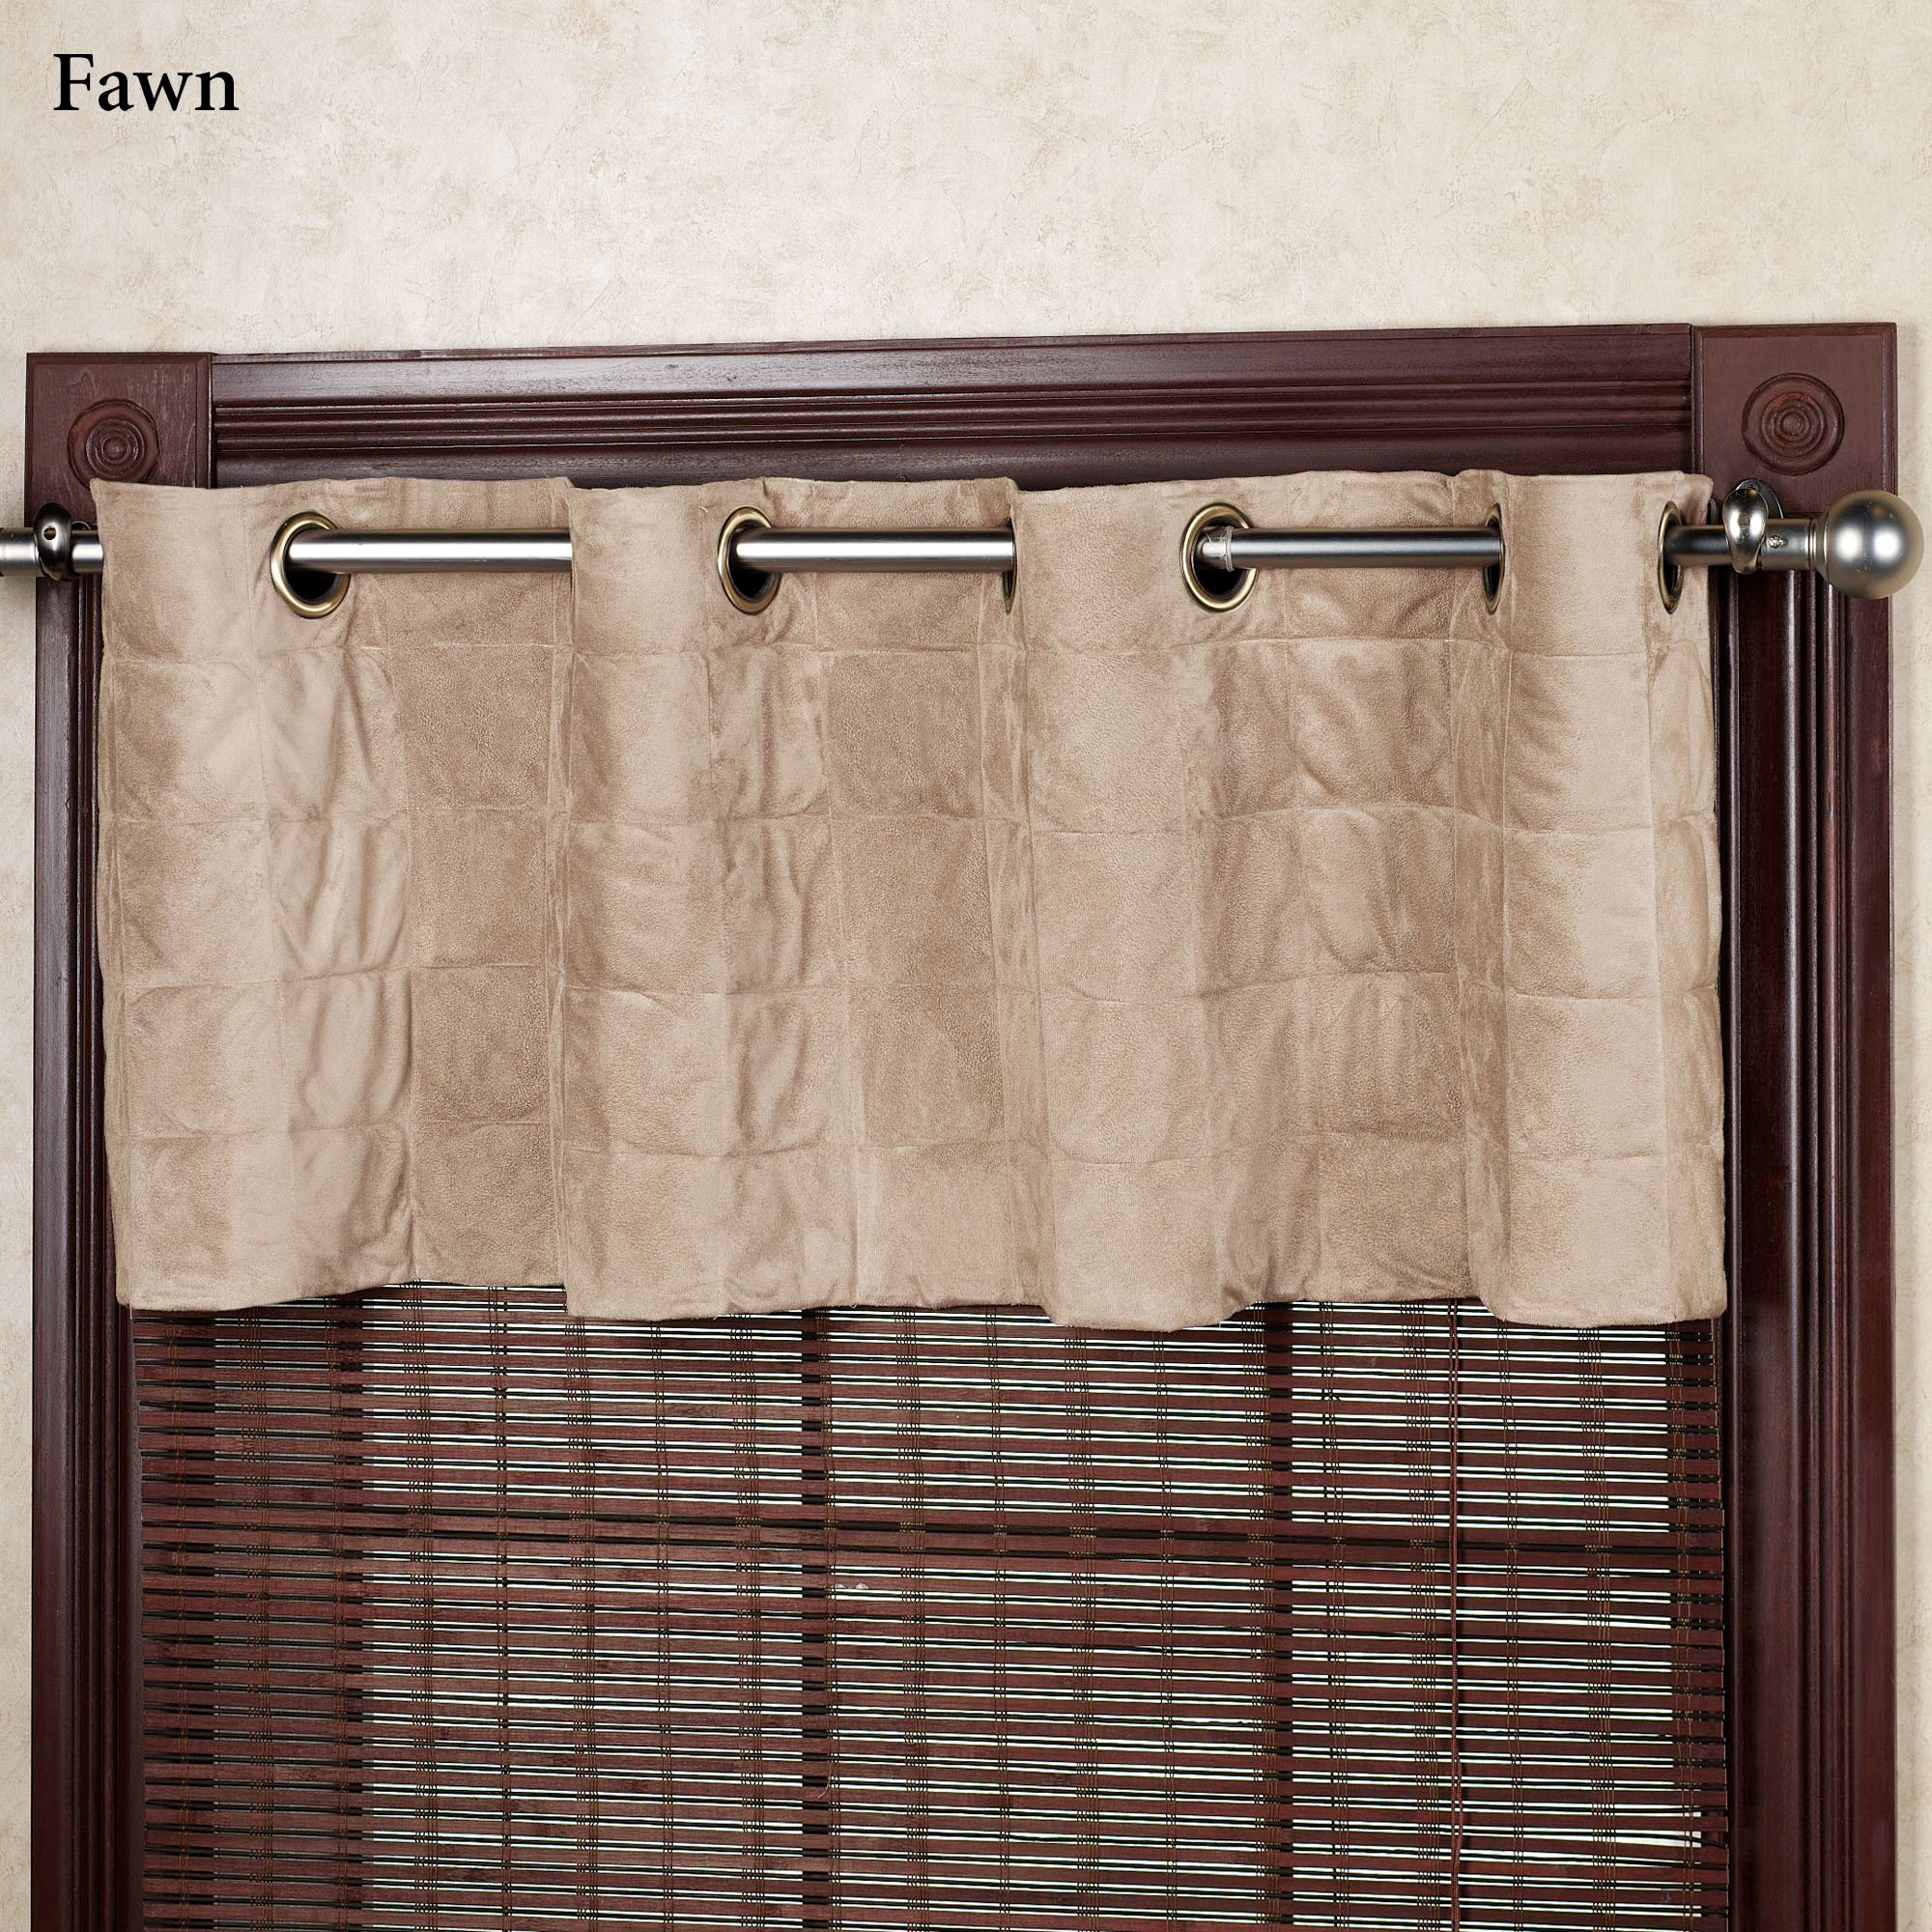 pair patterned commercial valance french macrame shower of beautiful valances copper curtain musical parramatta contemporary cliffside with grommets size full sale grommet wayfair blinds clear on curtains panels country panel